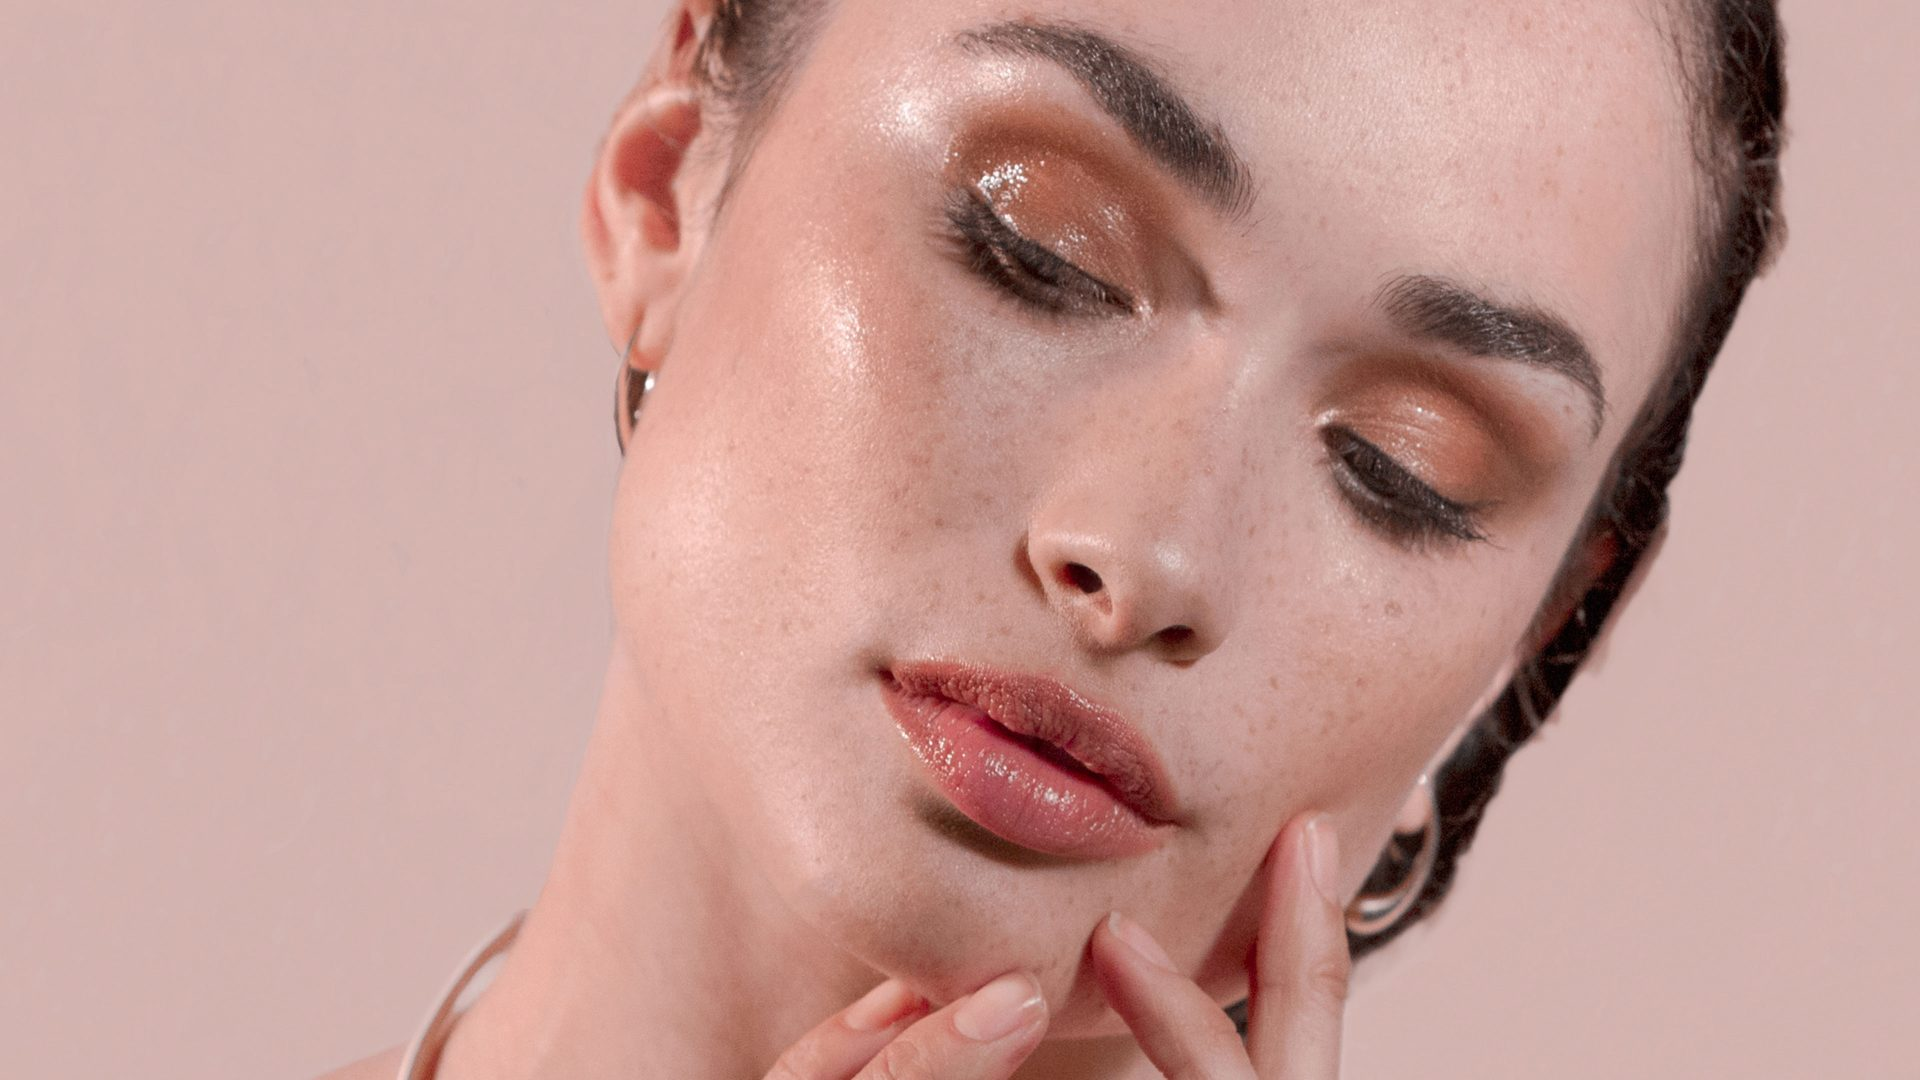 Closeup of models face and hands